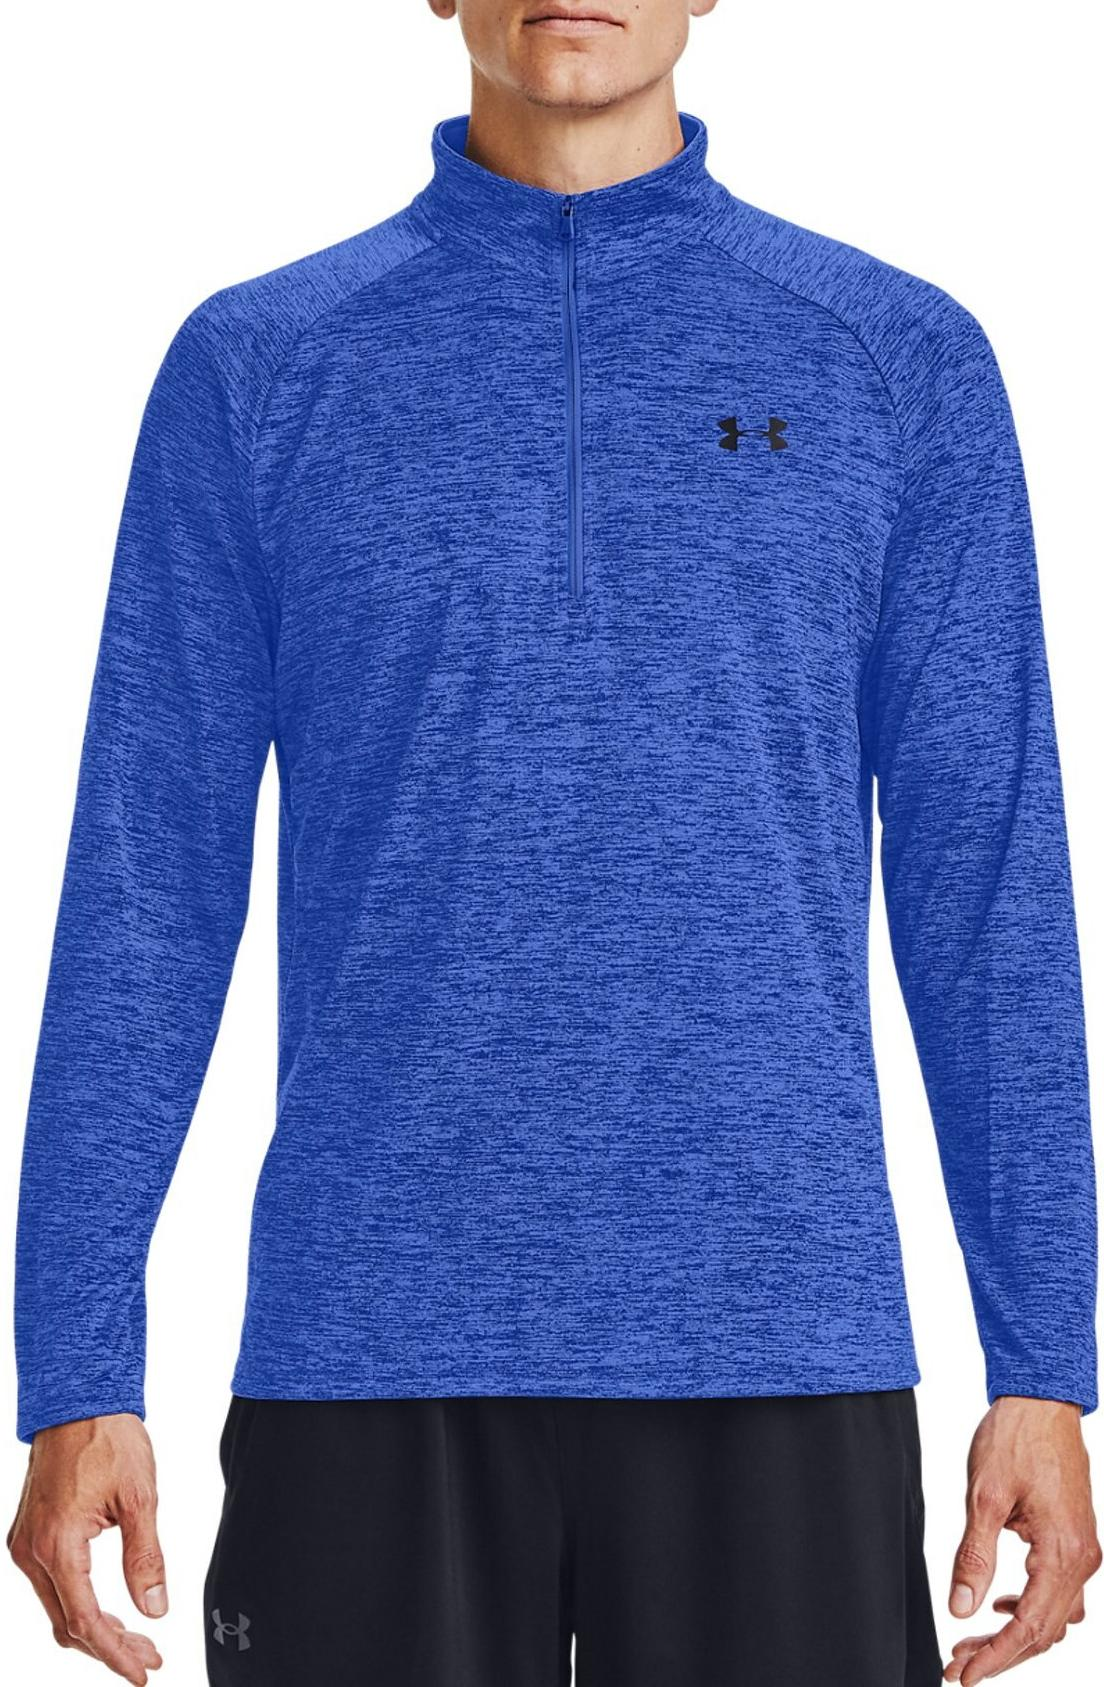 Magliette a maniche lunghe Under Armour UA Tech 2.0 1/2 Zip